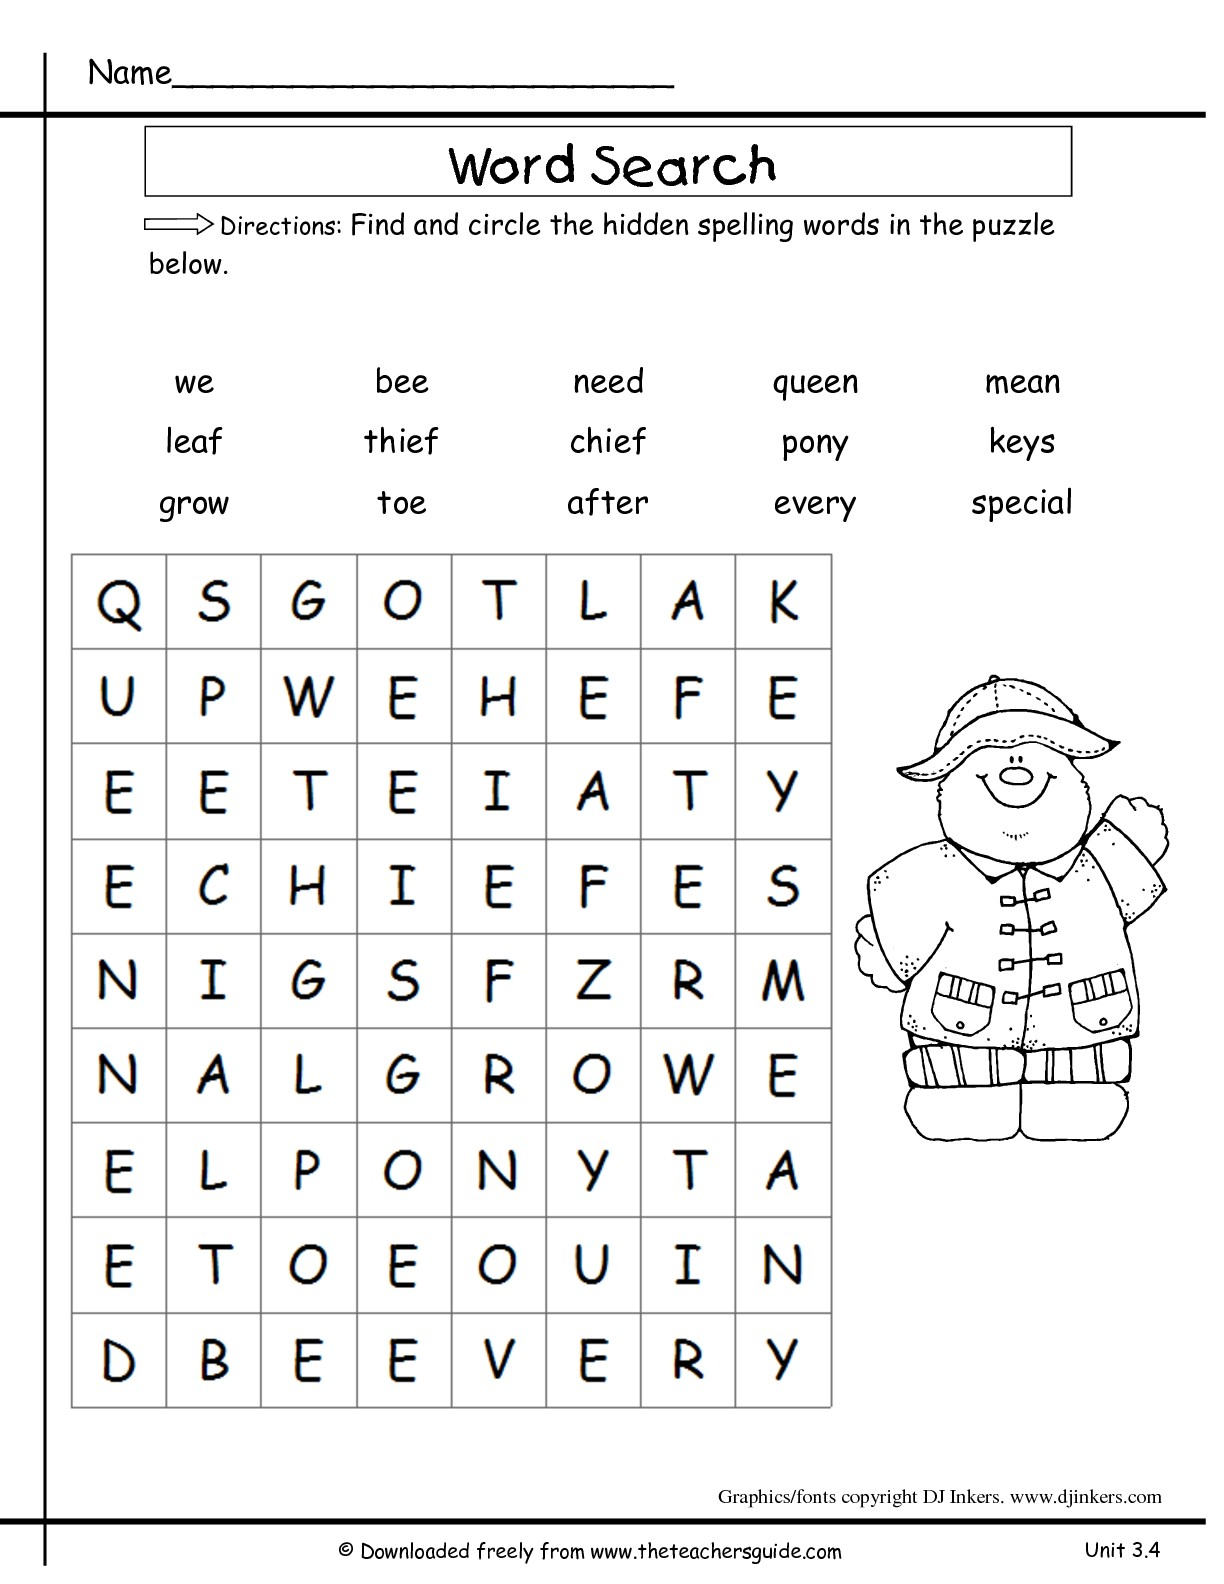 Spelling Words For 2nd Grade